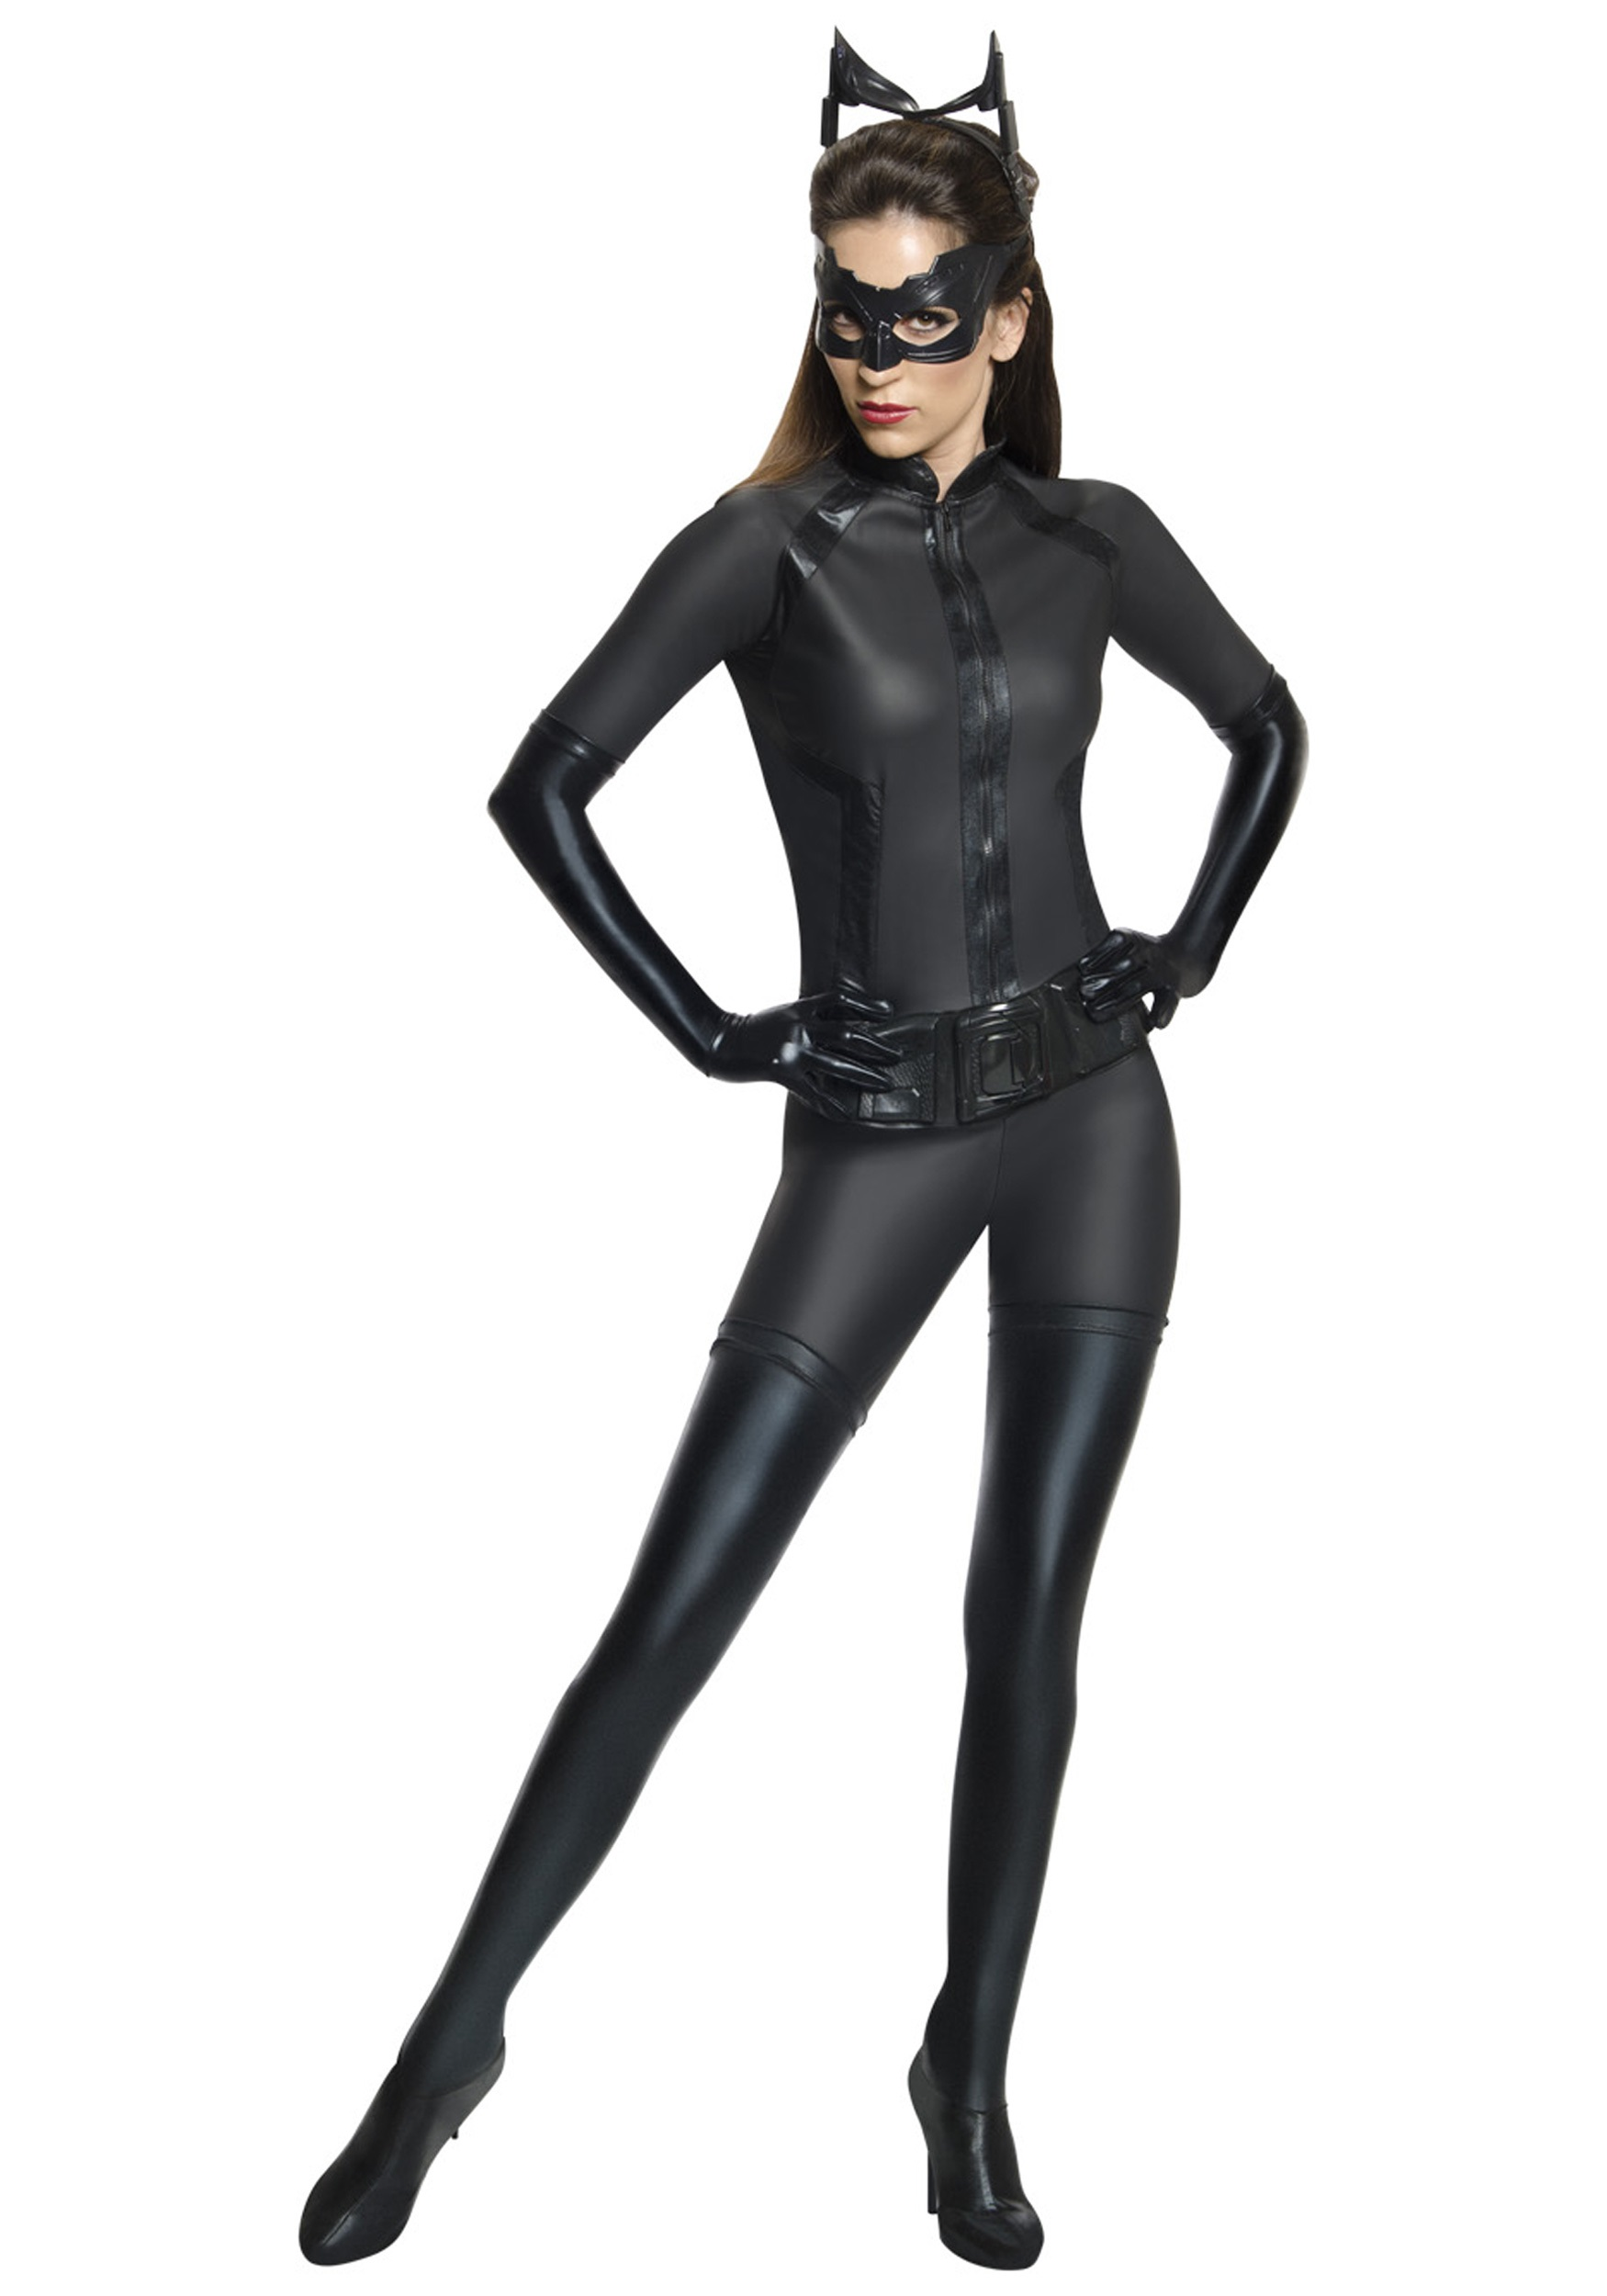 http://images.halloweencostumes.com/grand-heritage-catwoman-costume-zoom.jpg